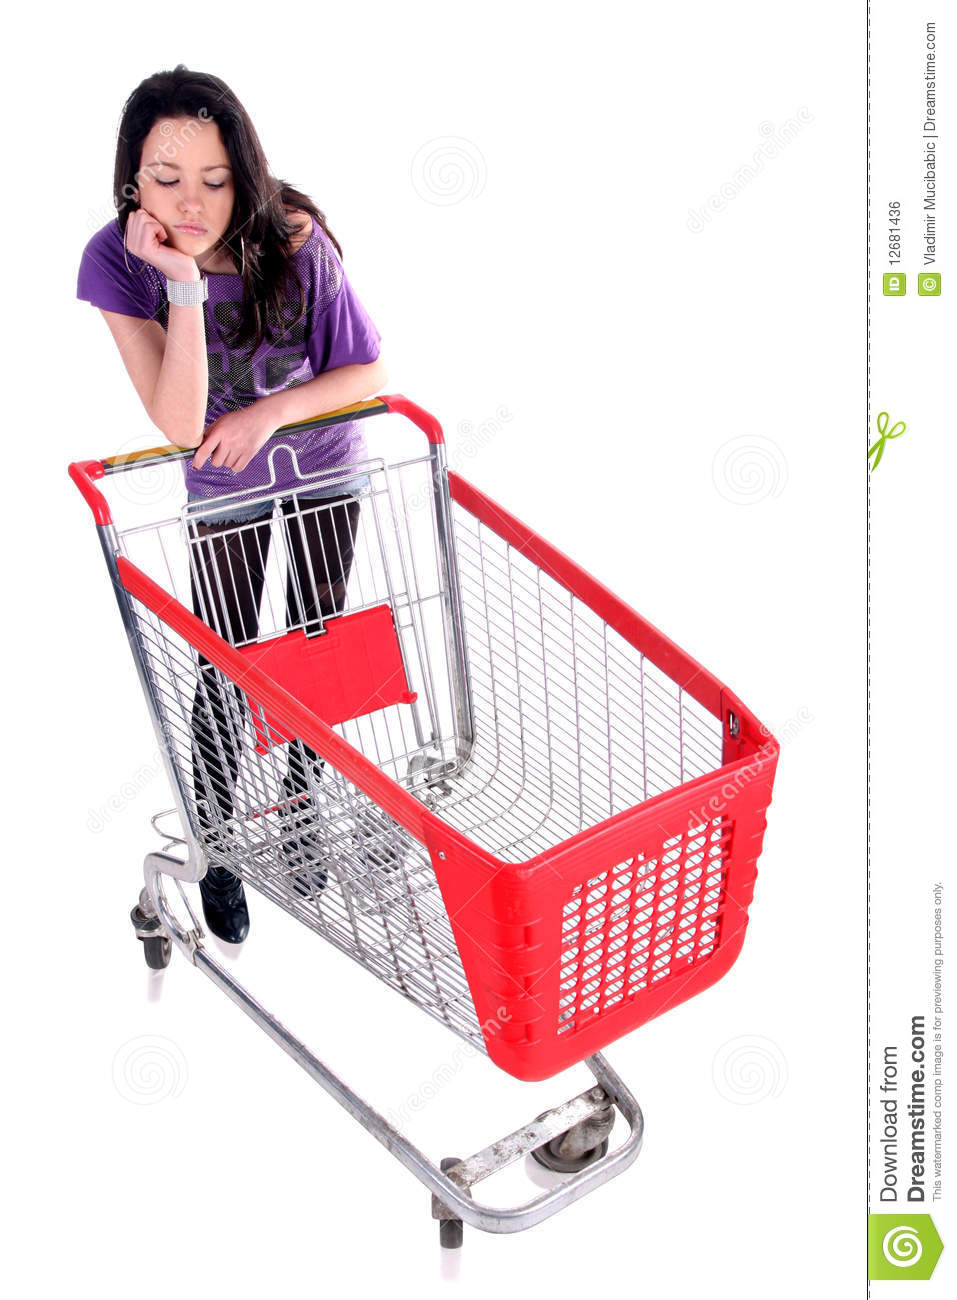 Unhappy Girl With Shopping Cart Royalty Free Stock Image ...